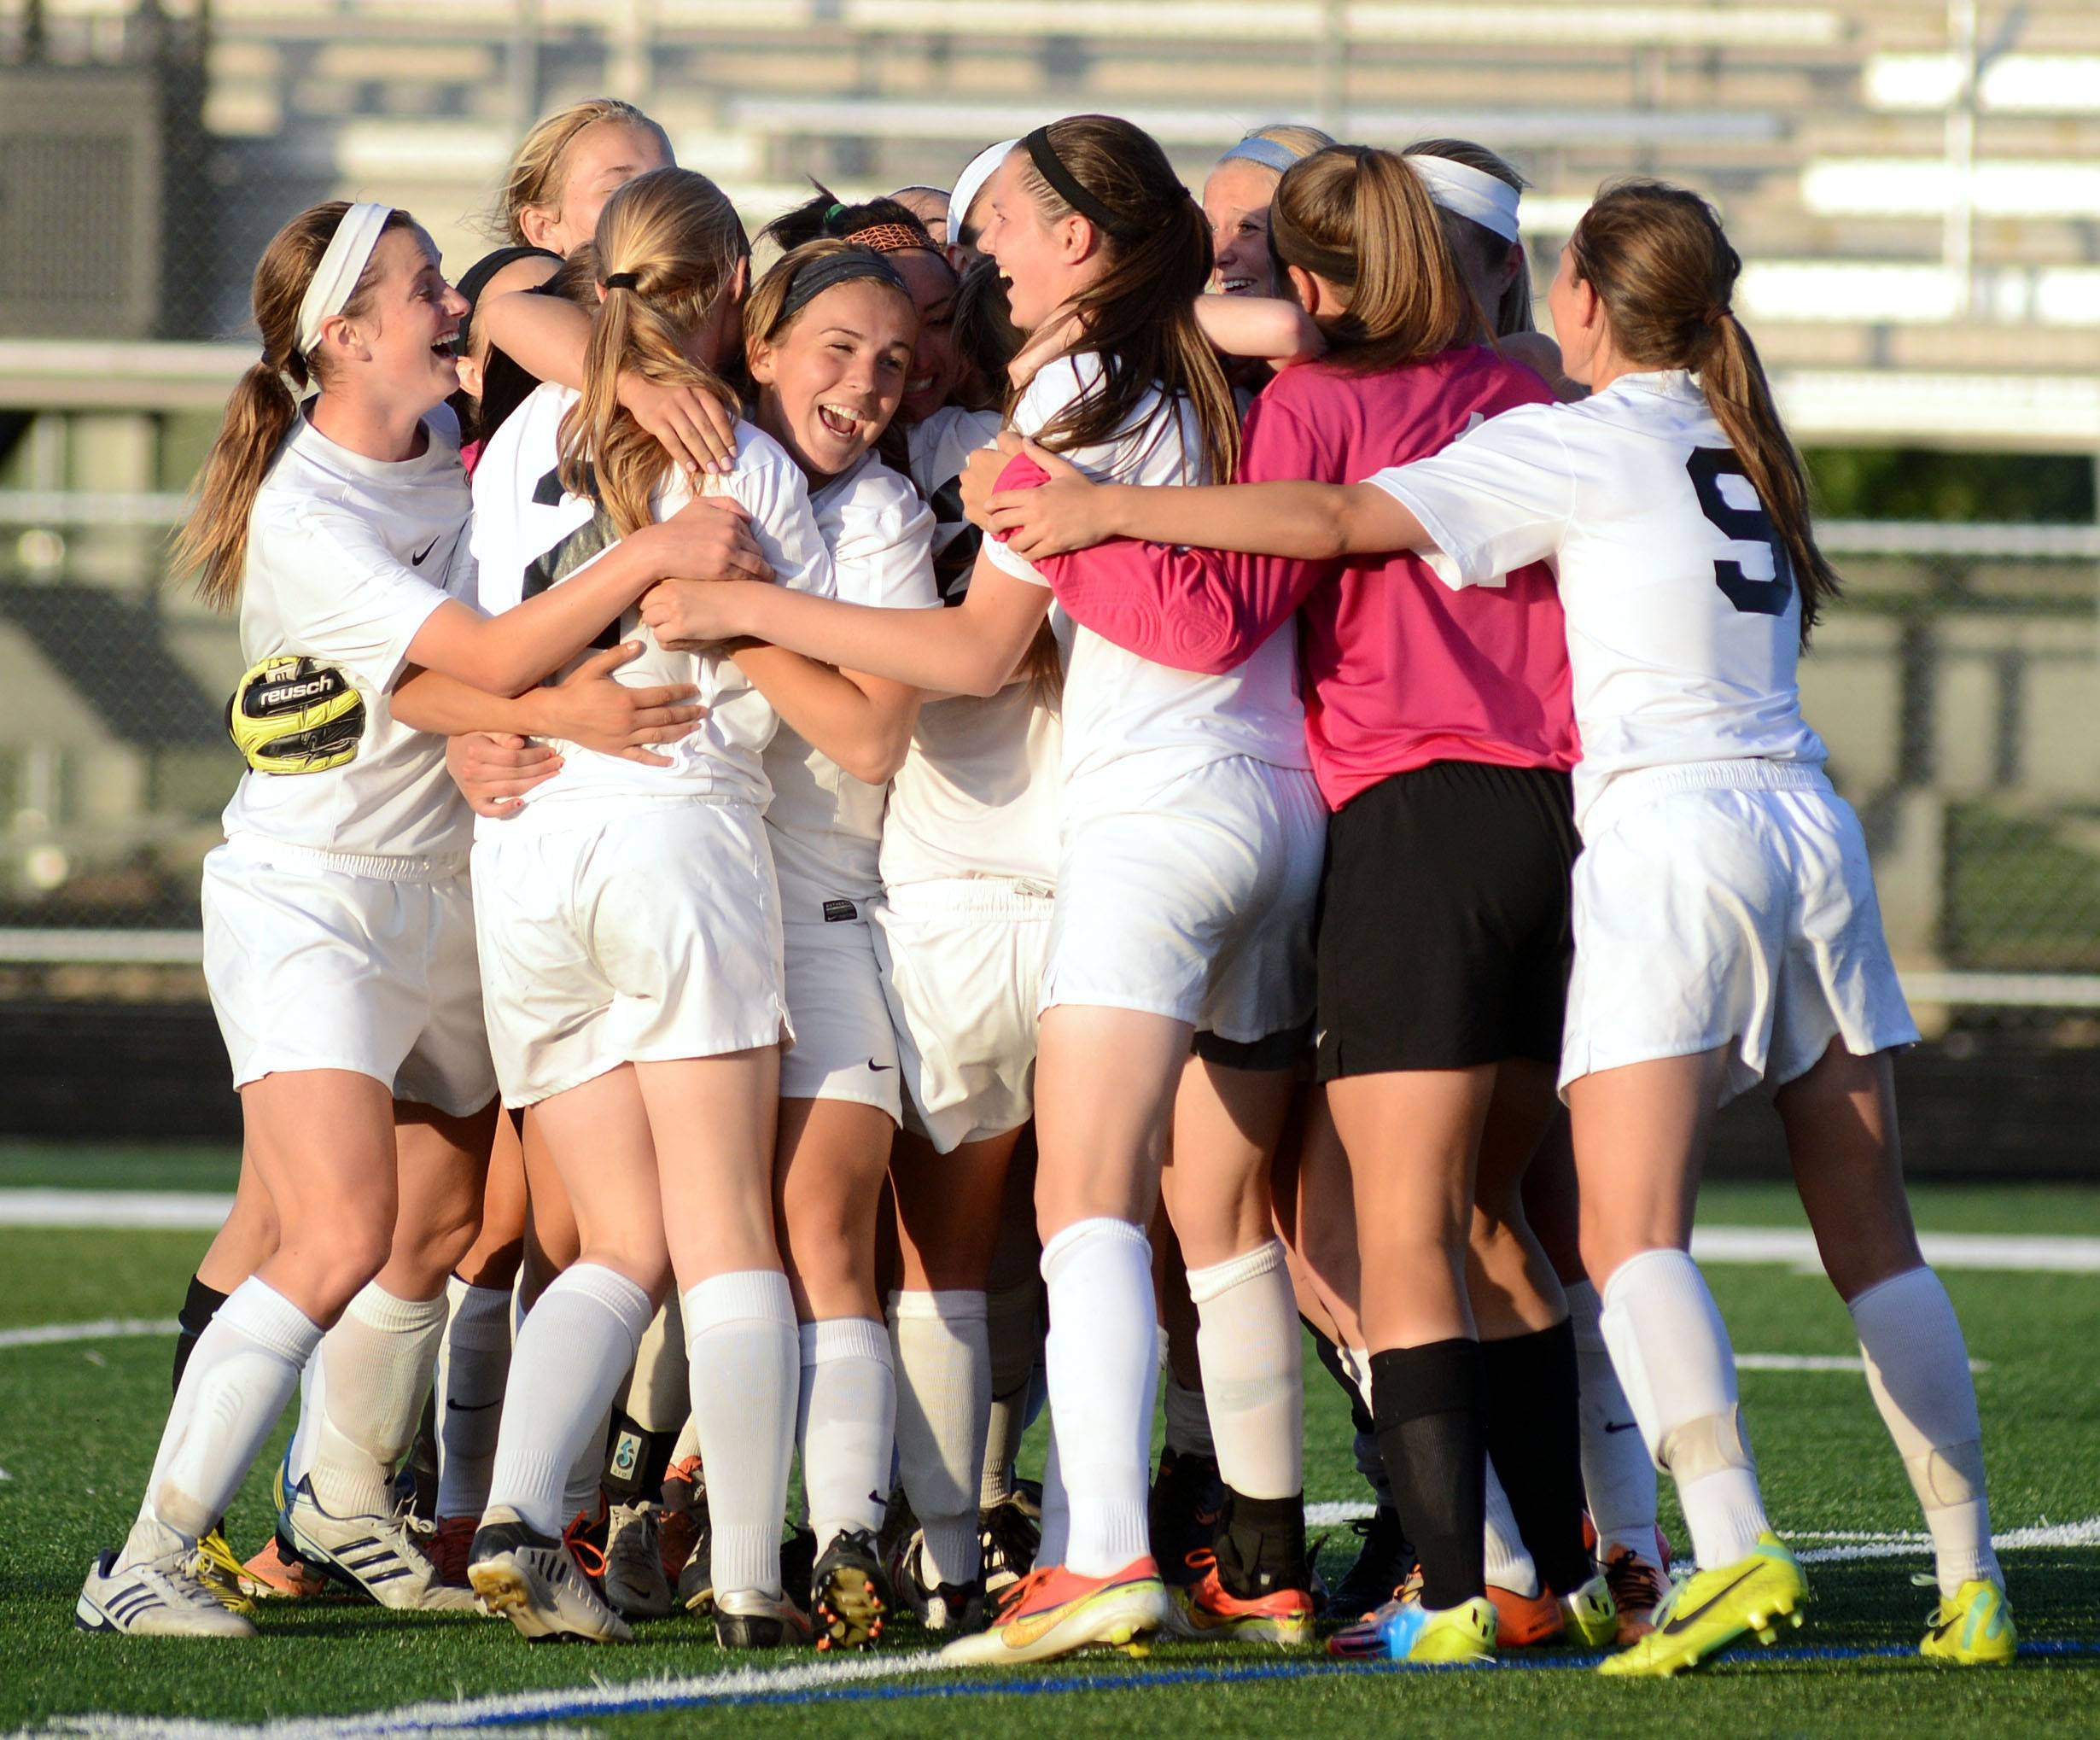 St. Charles East's Anna Corirosi (facing) and teammates embrace on the field after their 2-0 win over Huntley in the Class 3A girls soccer supersectional at Lake Park High School in Roselle on Tuesday, June 3.